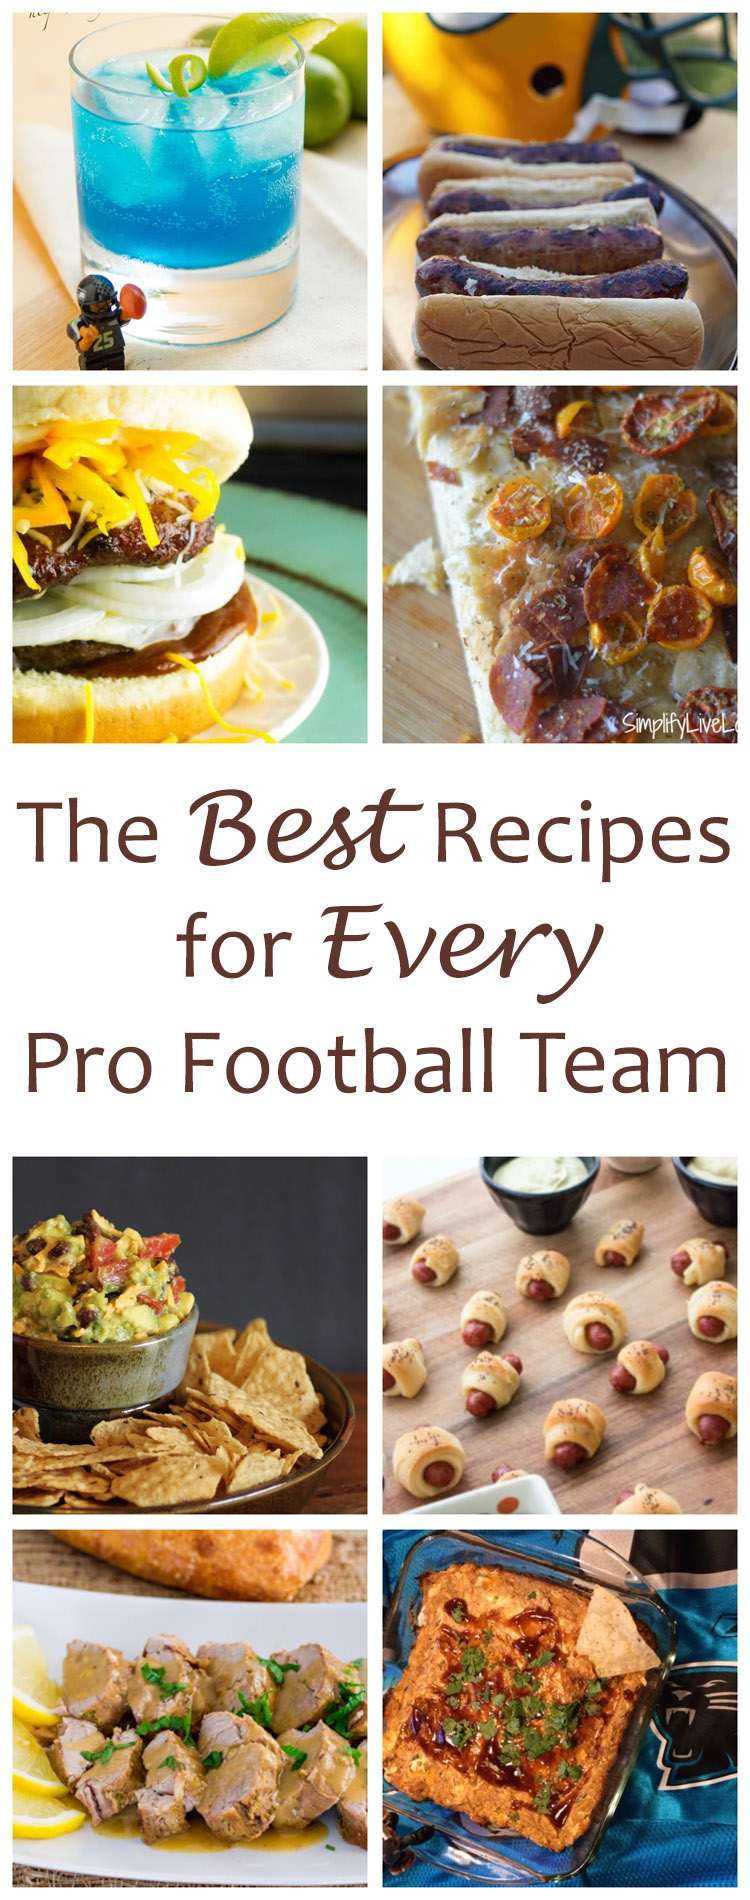 The Best Recipes for Every Pro Football Team - That's right, 32 Pro Football Team Recipes - no matter which team is your favorite, I have a recipe for you!